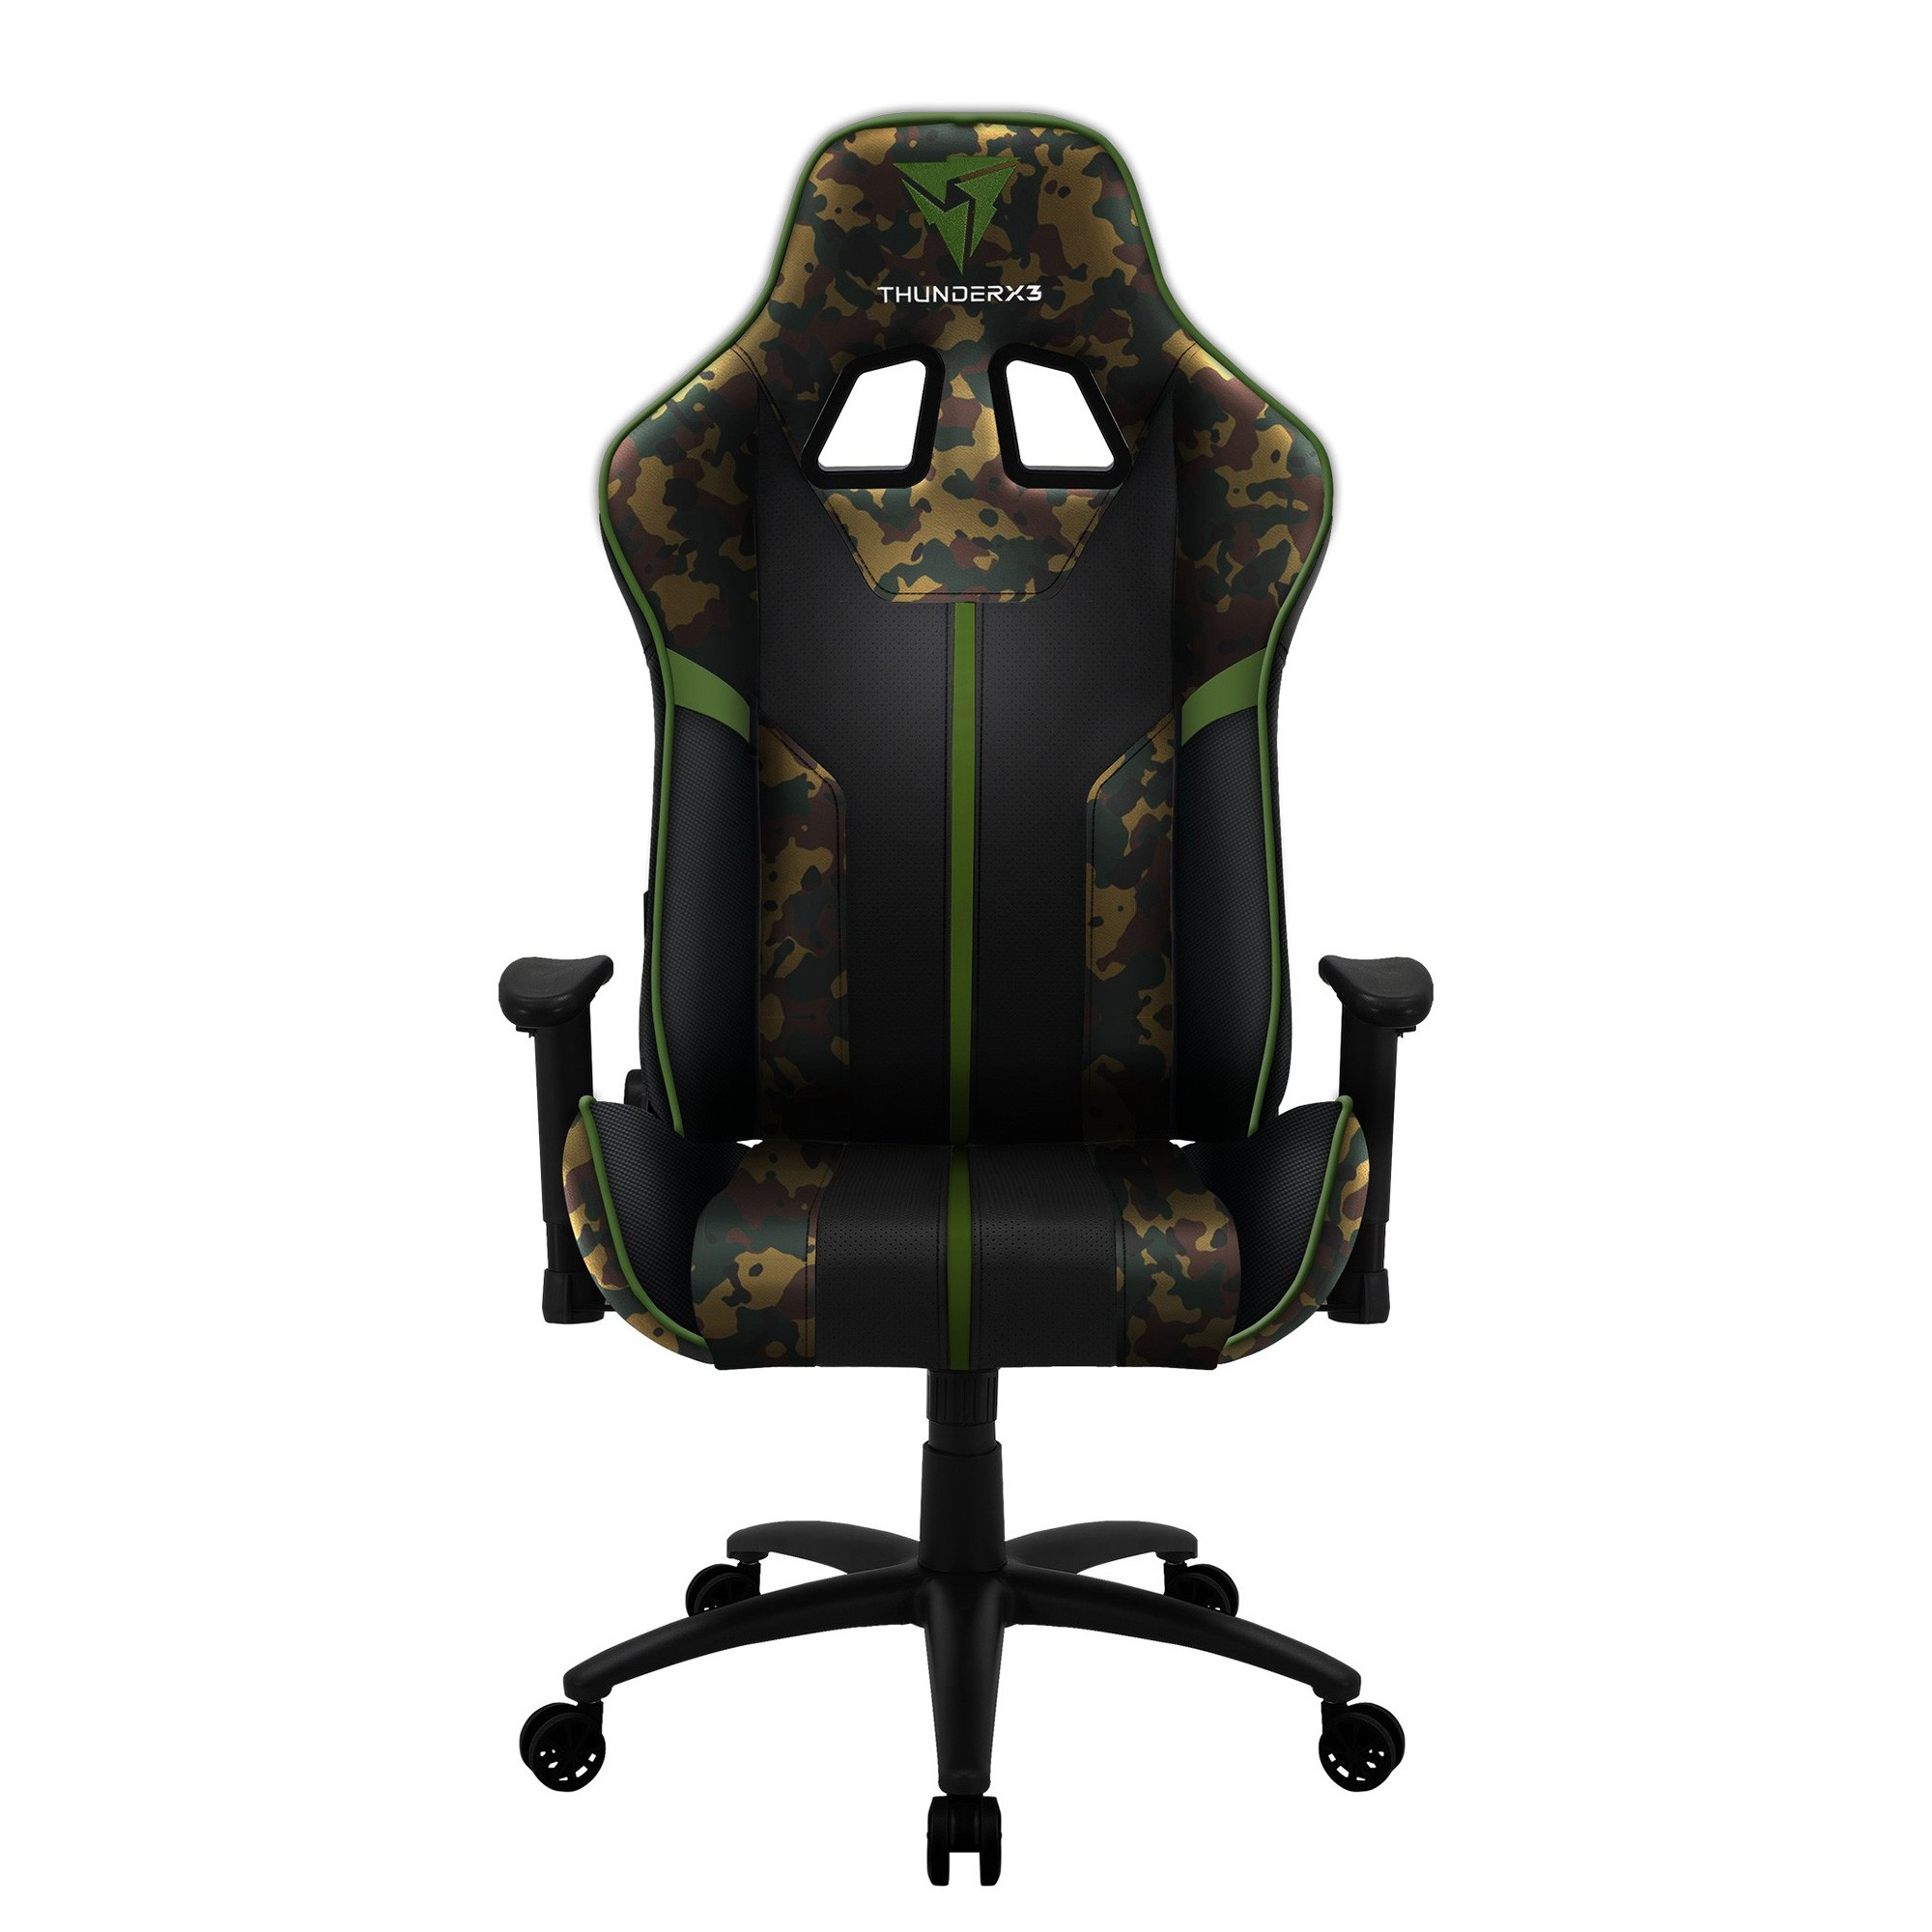 ThunderX3 BC3 Camo Gaming Chair, Ranger Green